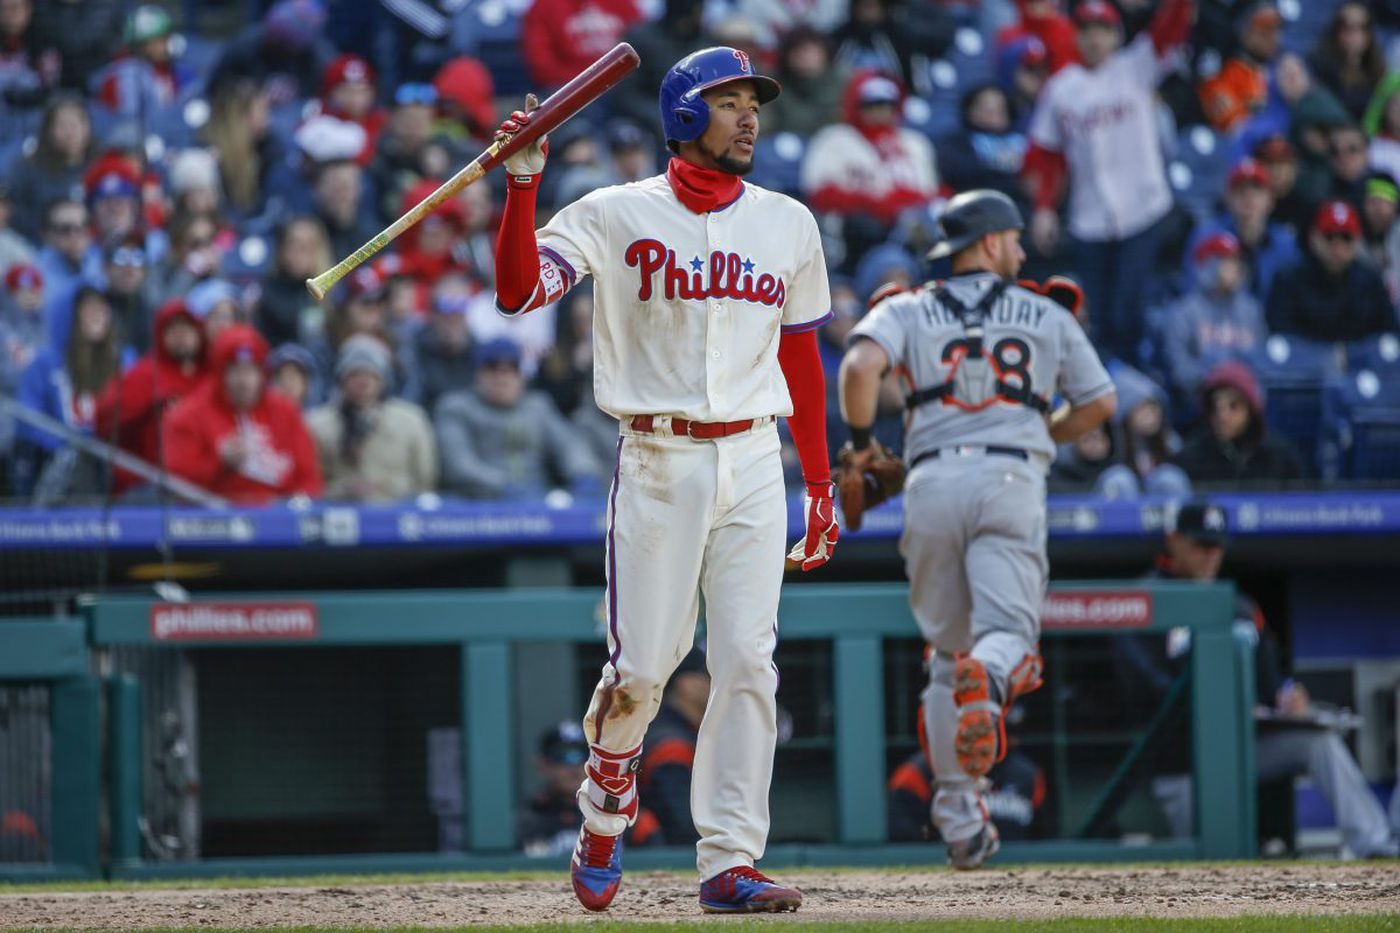 Phillies' J.P. Crawford struggling to shorten his swing